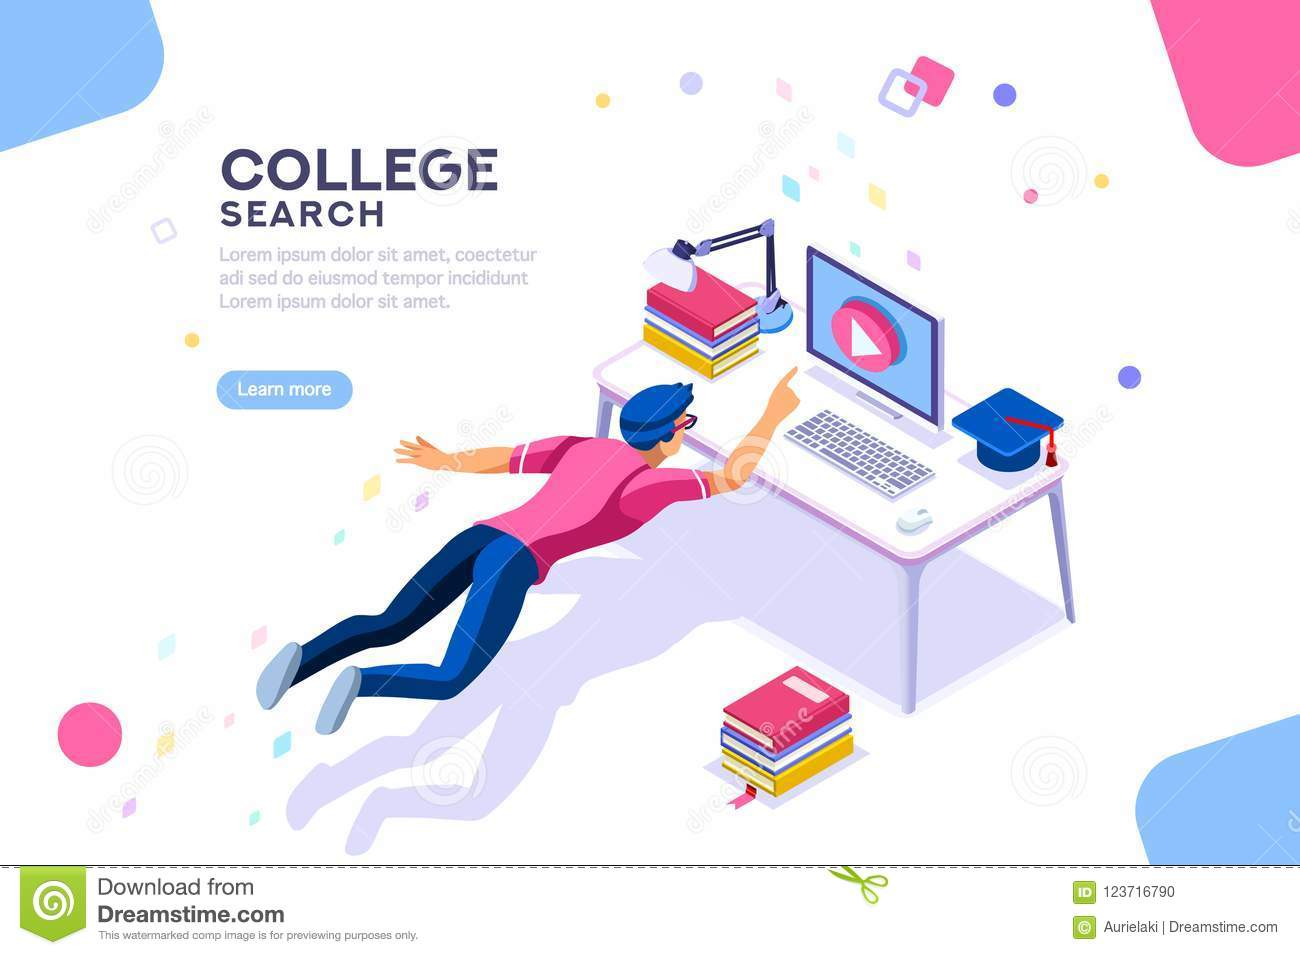 Character Design Courses University : College search university online courses banner stock vector